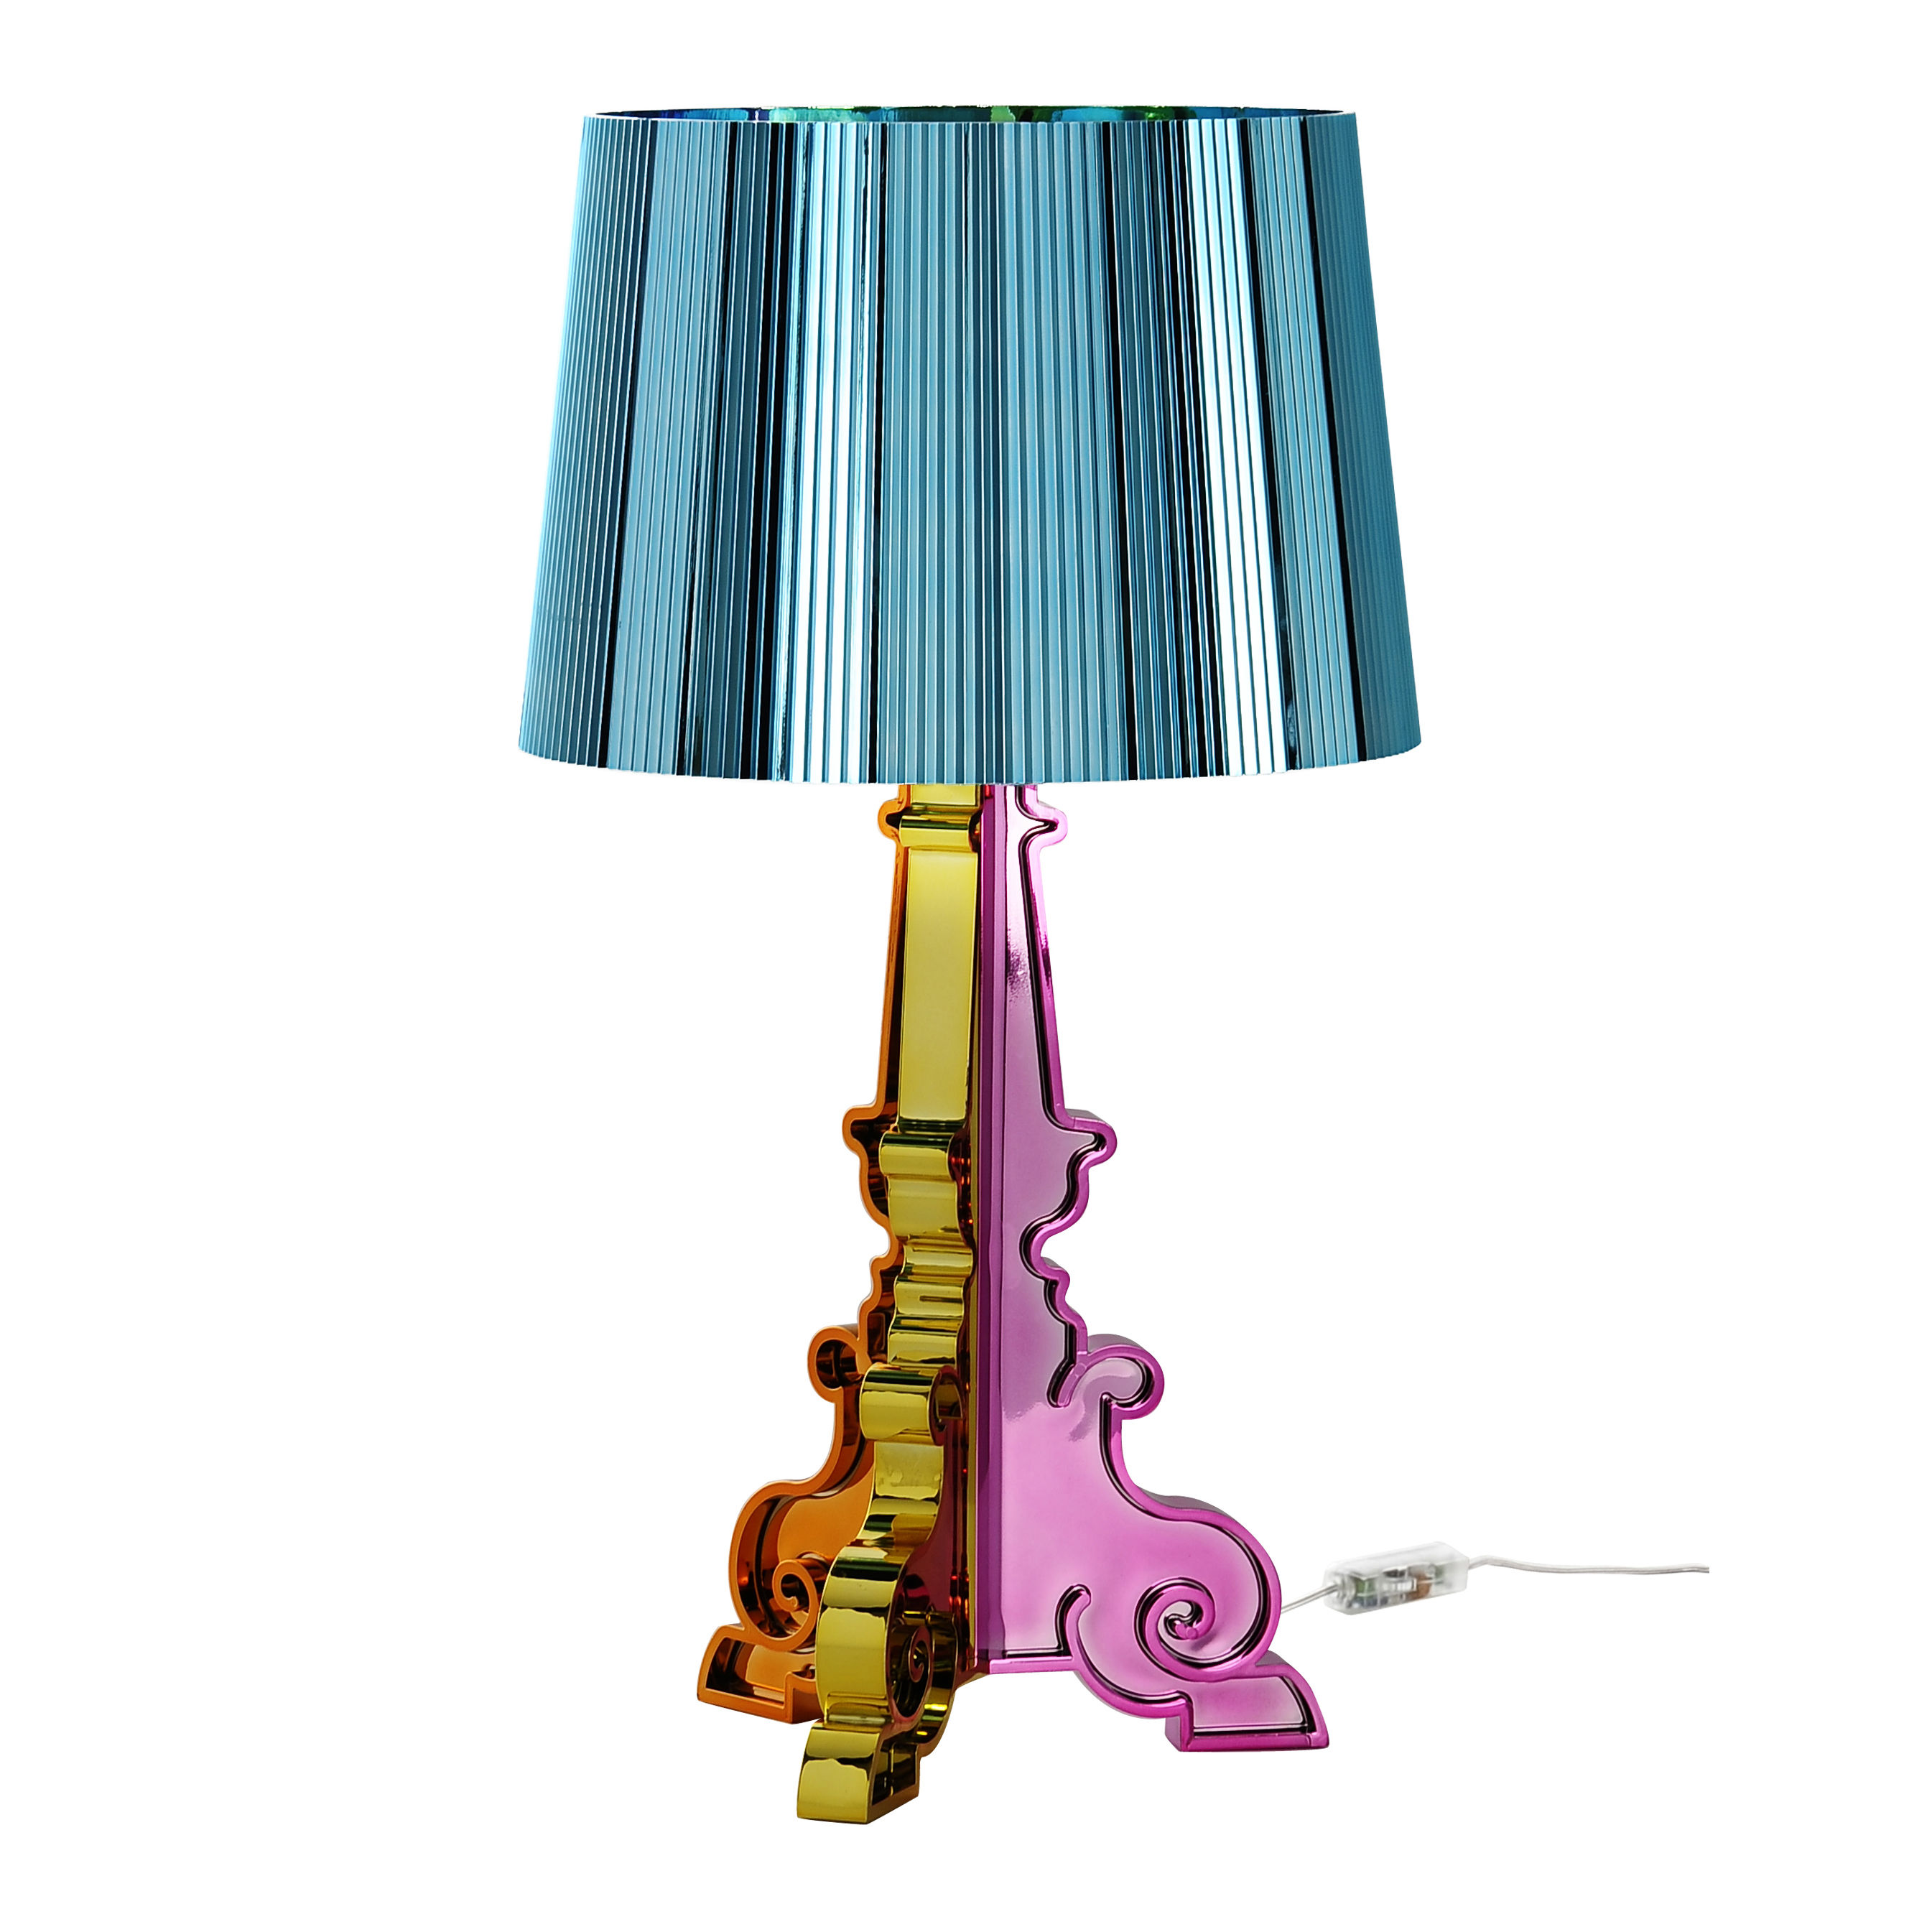 bourgie table lamp azure by kartell. Black Bedroom Furniture Sets. Home Design Ideas